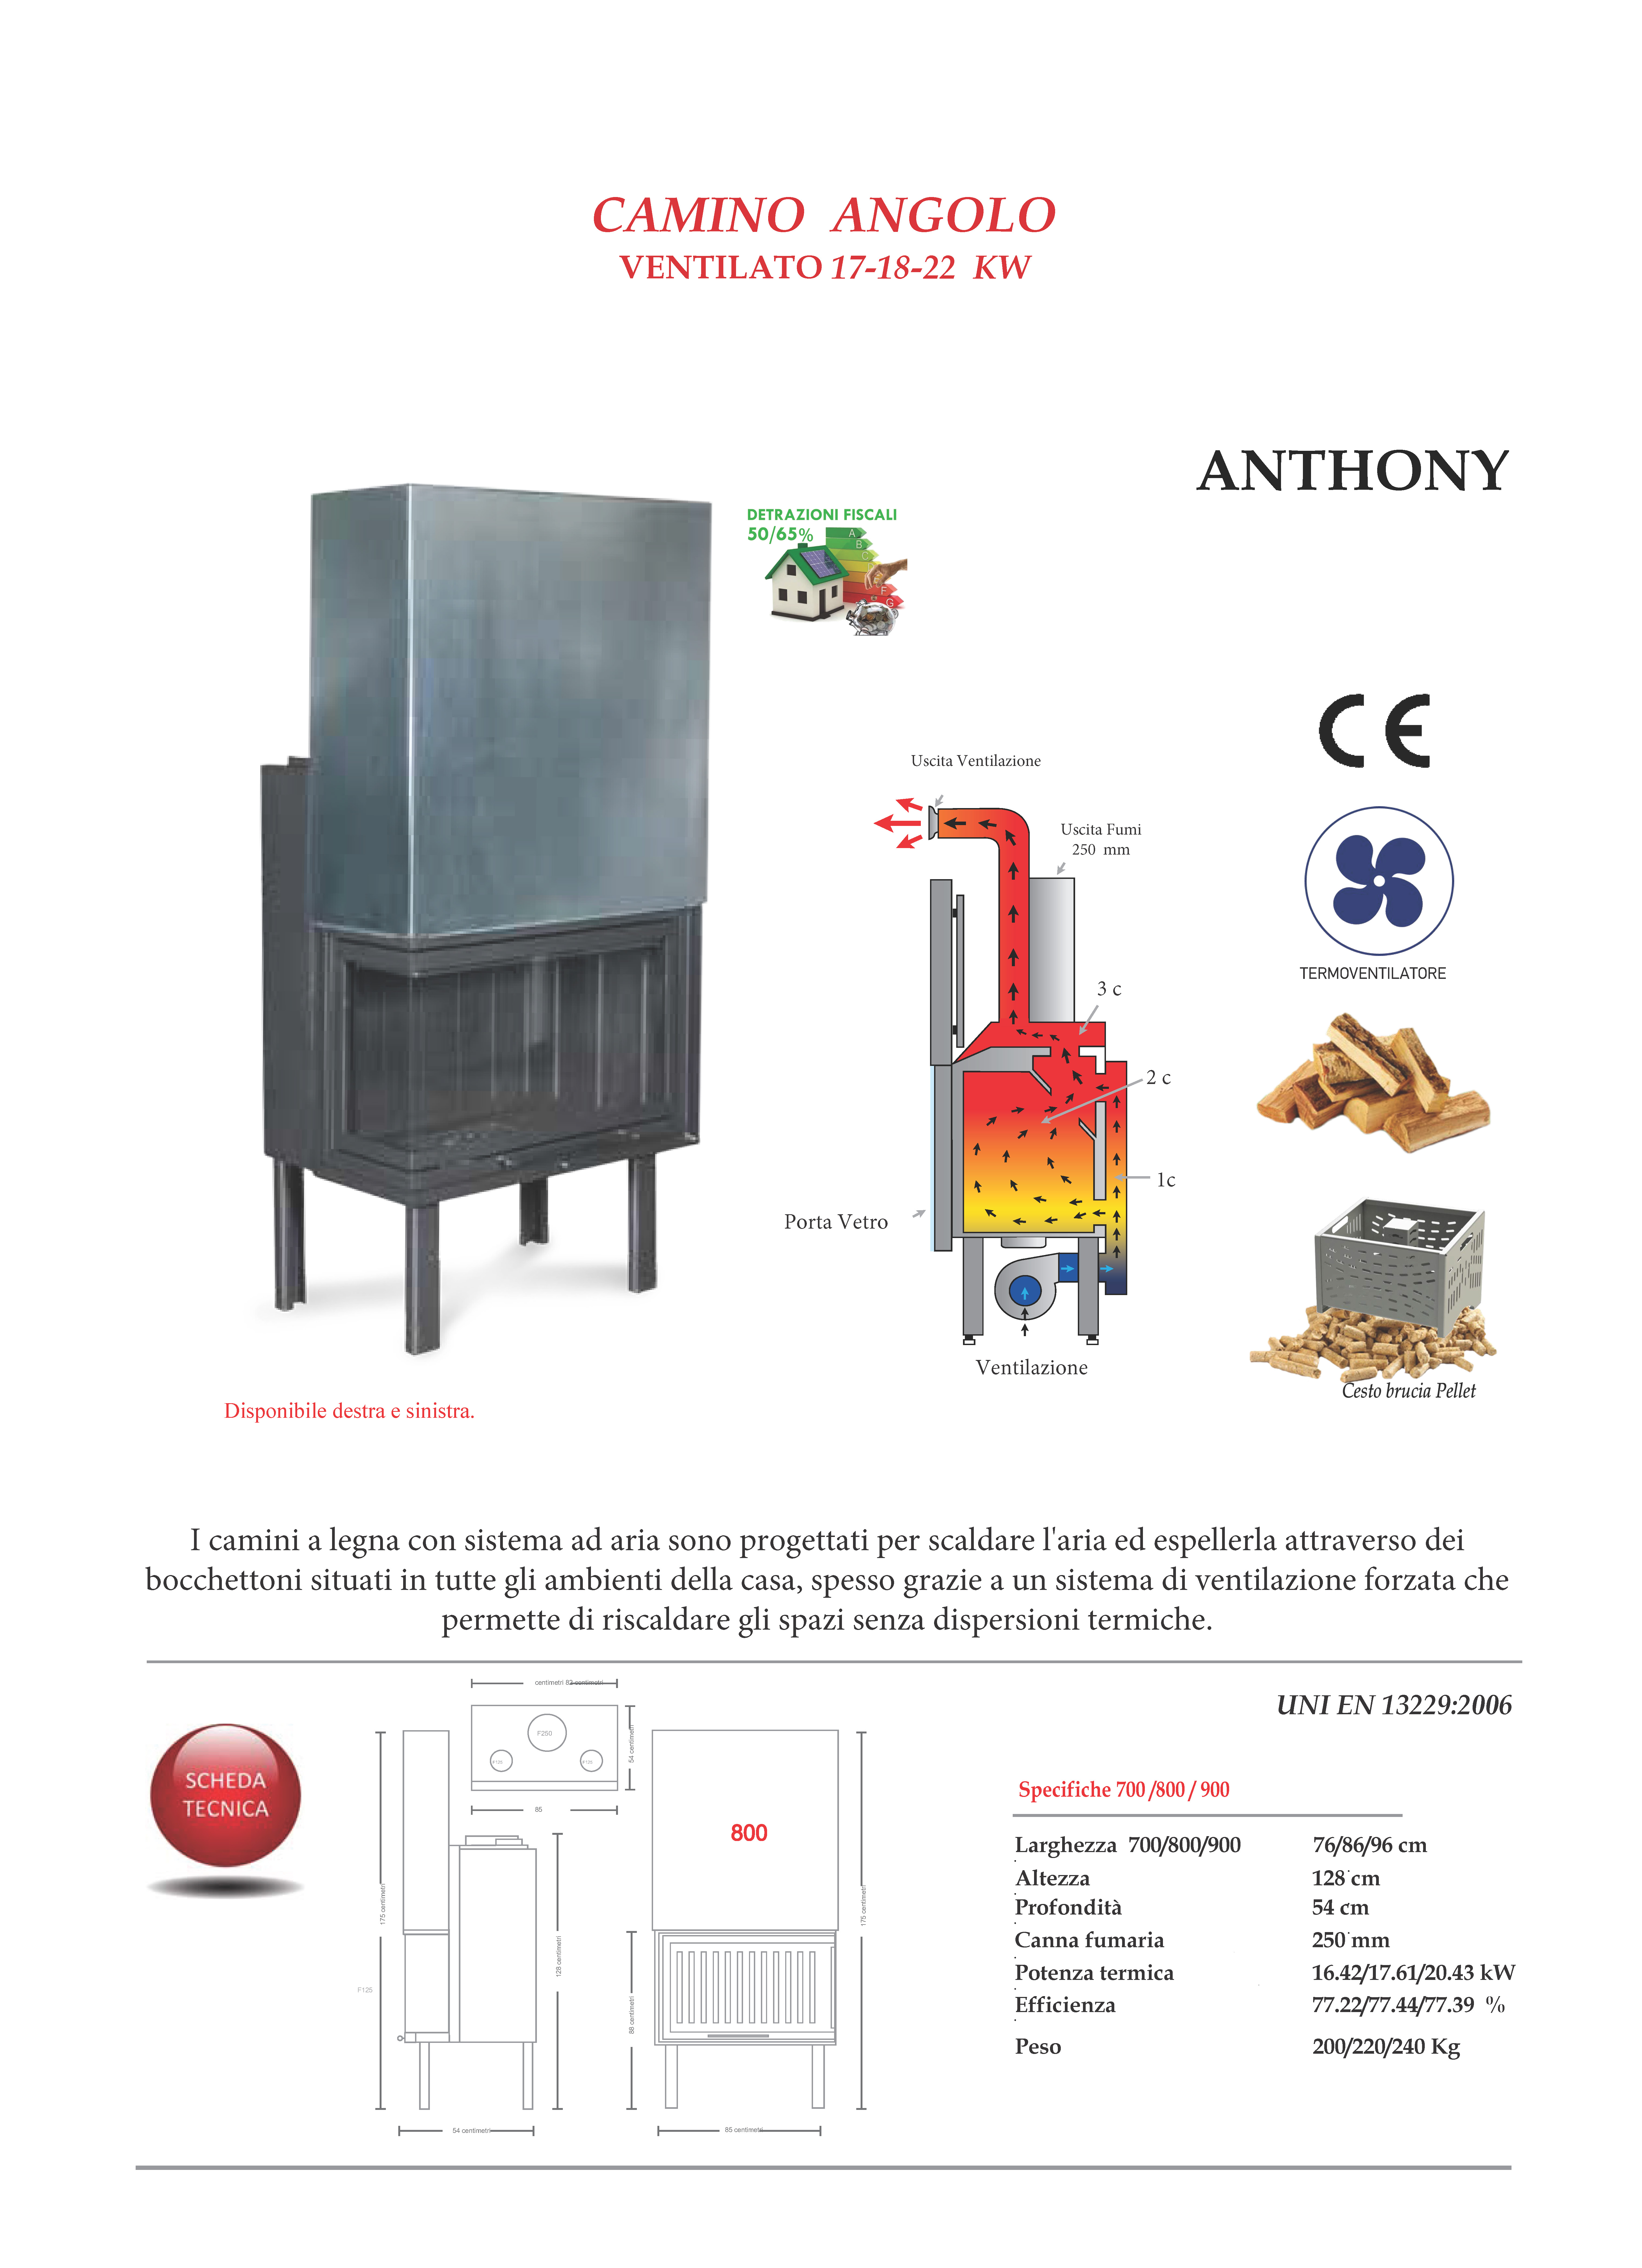 CAMINO VENTILATO ANTHONY